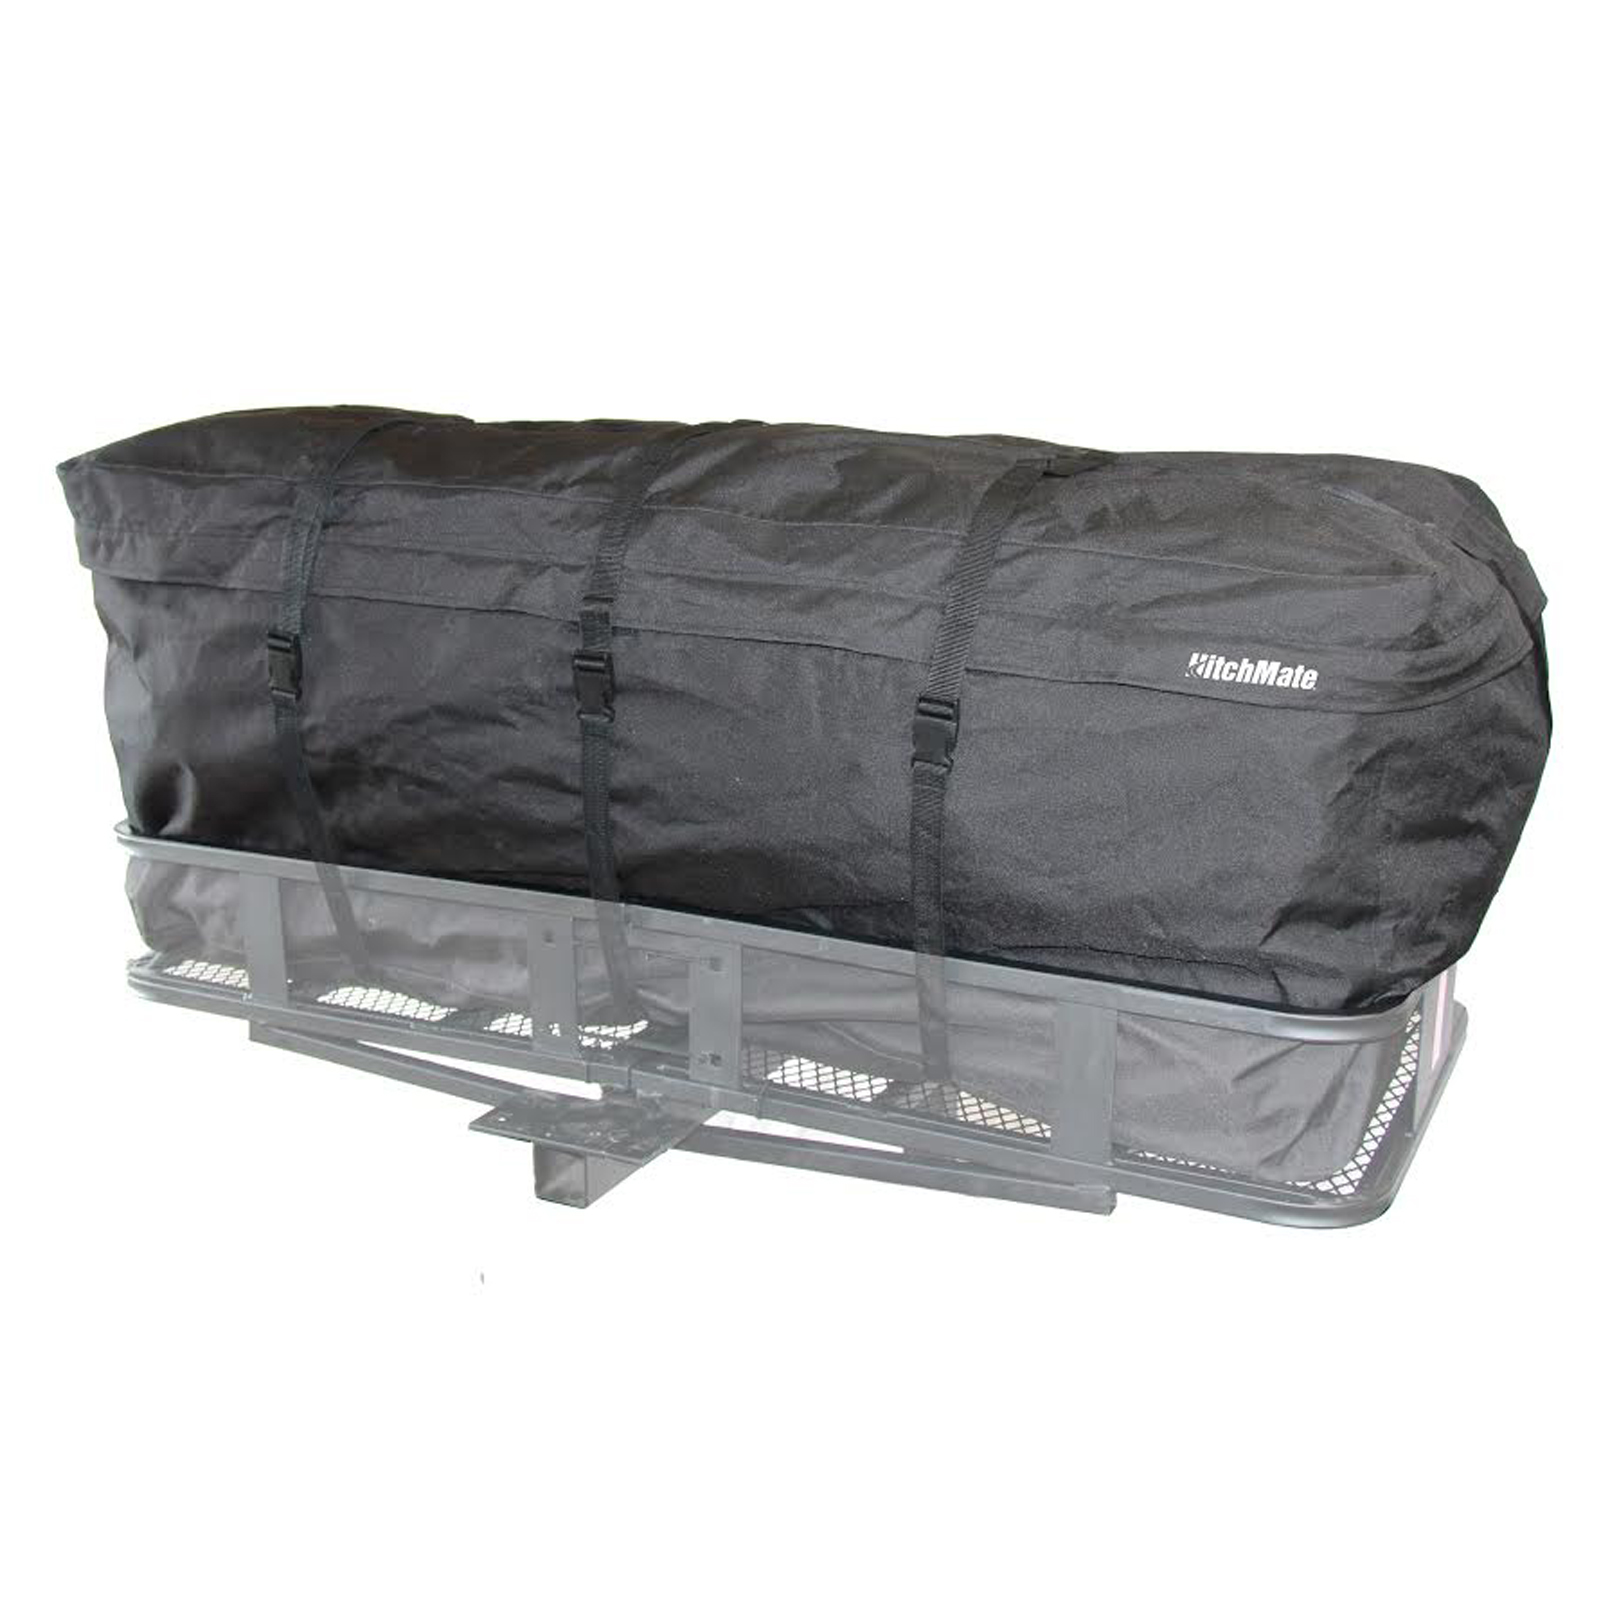 Heininger HitchMate Cargo Load Carrier Bag 12 Cubic Feet Capacity